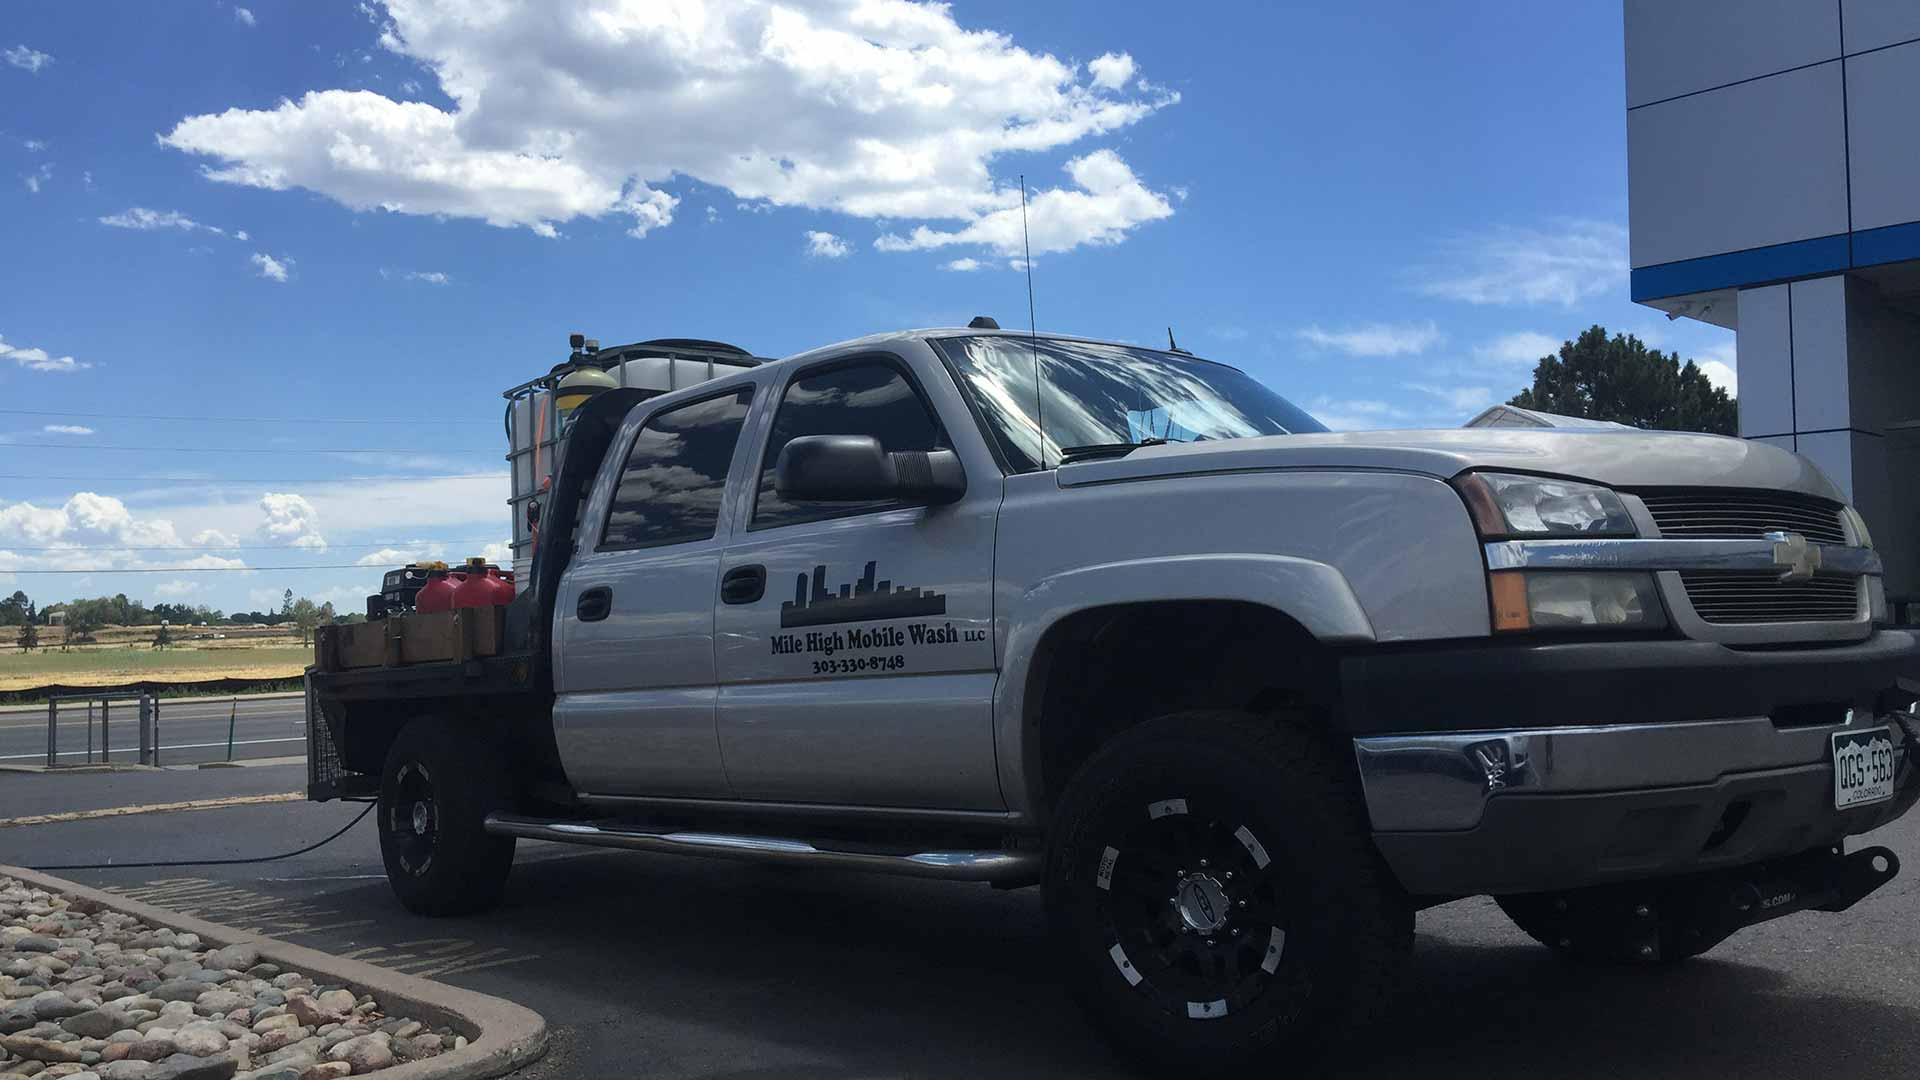 Mile High Mobile Wash: Fleet Washing, Pressure Washing and Graffiti Removal in Denver, Lakewood and Aurora